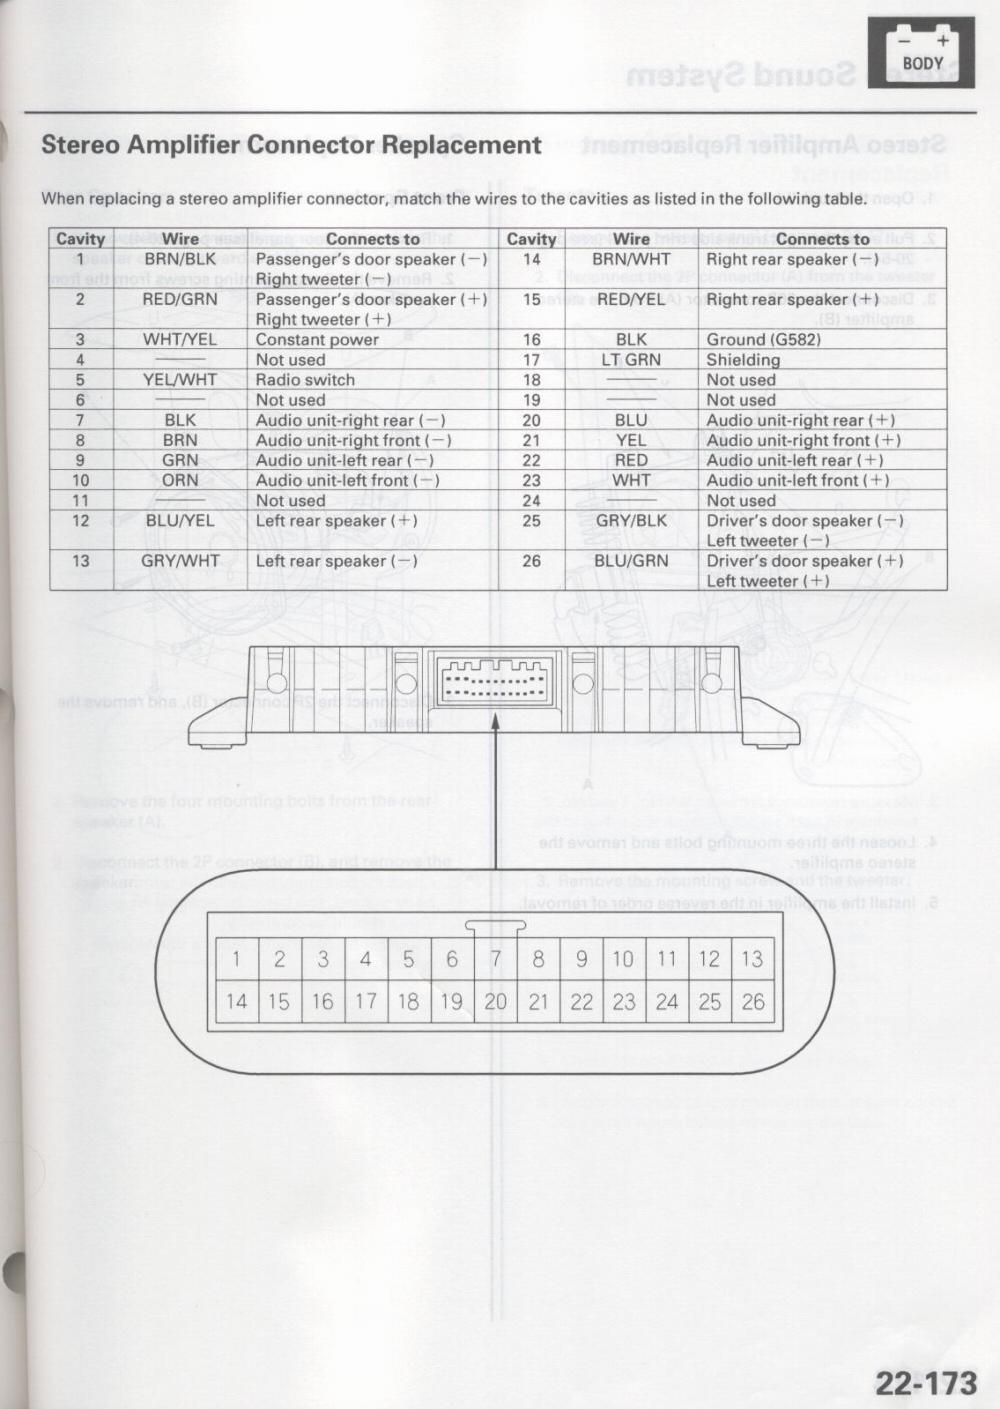 Acura 2002 TL car stereo amplifier wiring diagram harness car radio stereo audio wiring diagram autoradio connector wire 2012 chrysler 200 speaker wiring diagram at webbmarketing.co